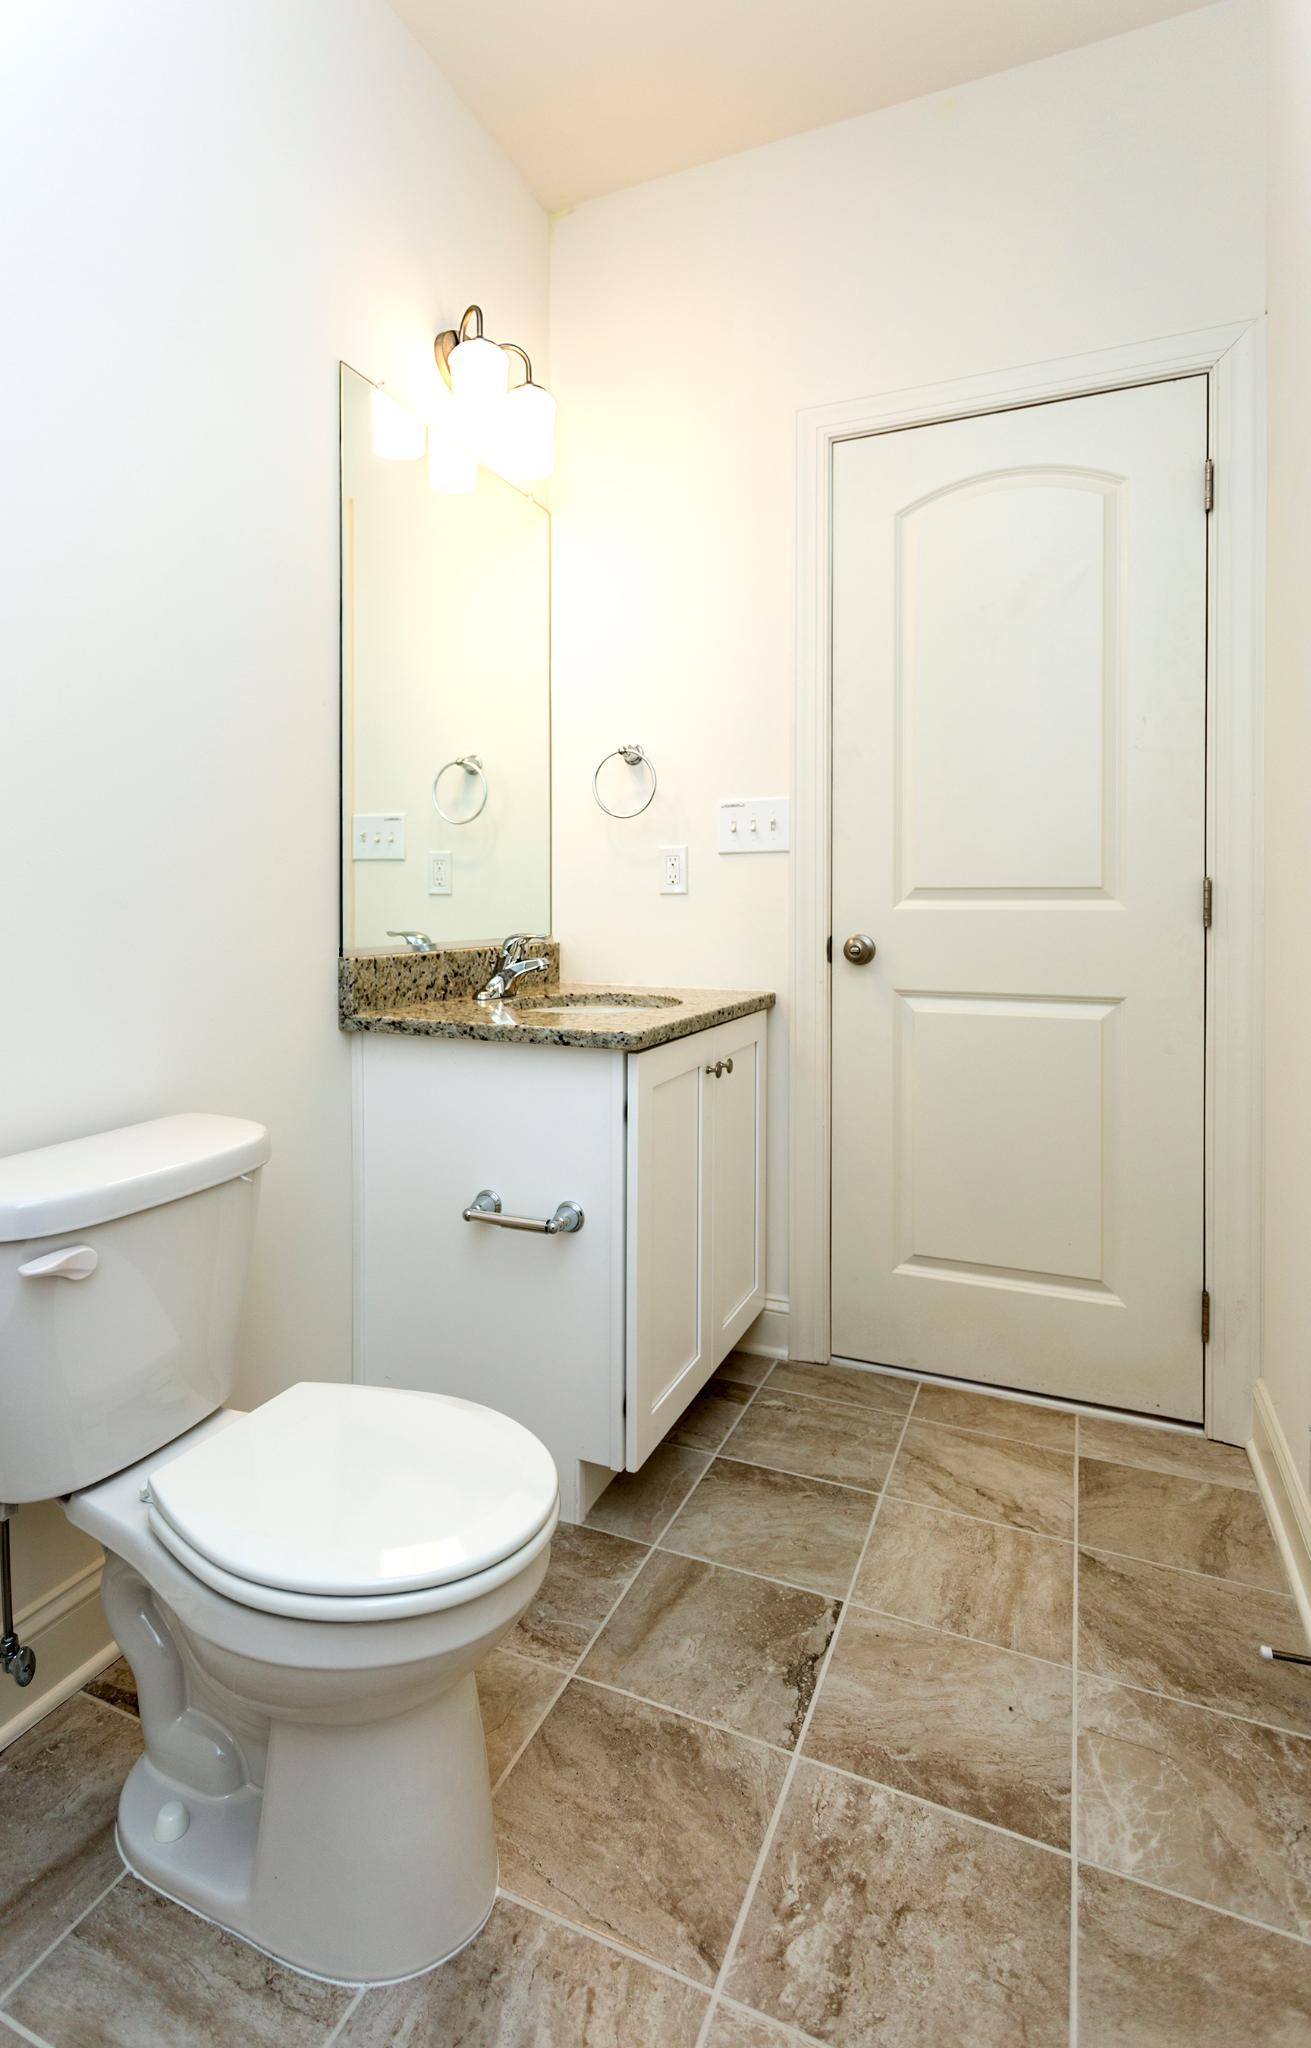 Bathroom featured in the Pinehurst Traditional By Tuskes Homes in Scranton-Wilkes-Barre, PA